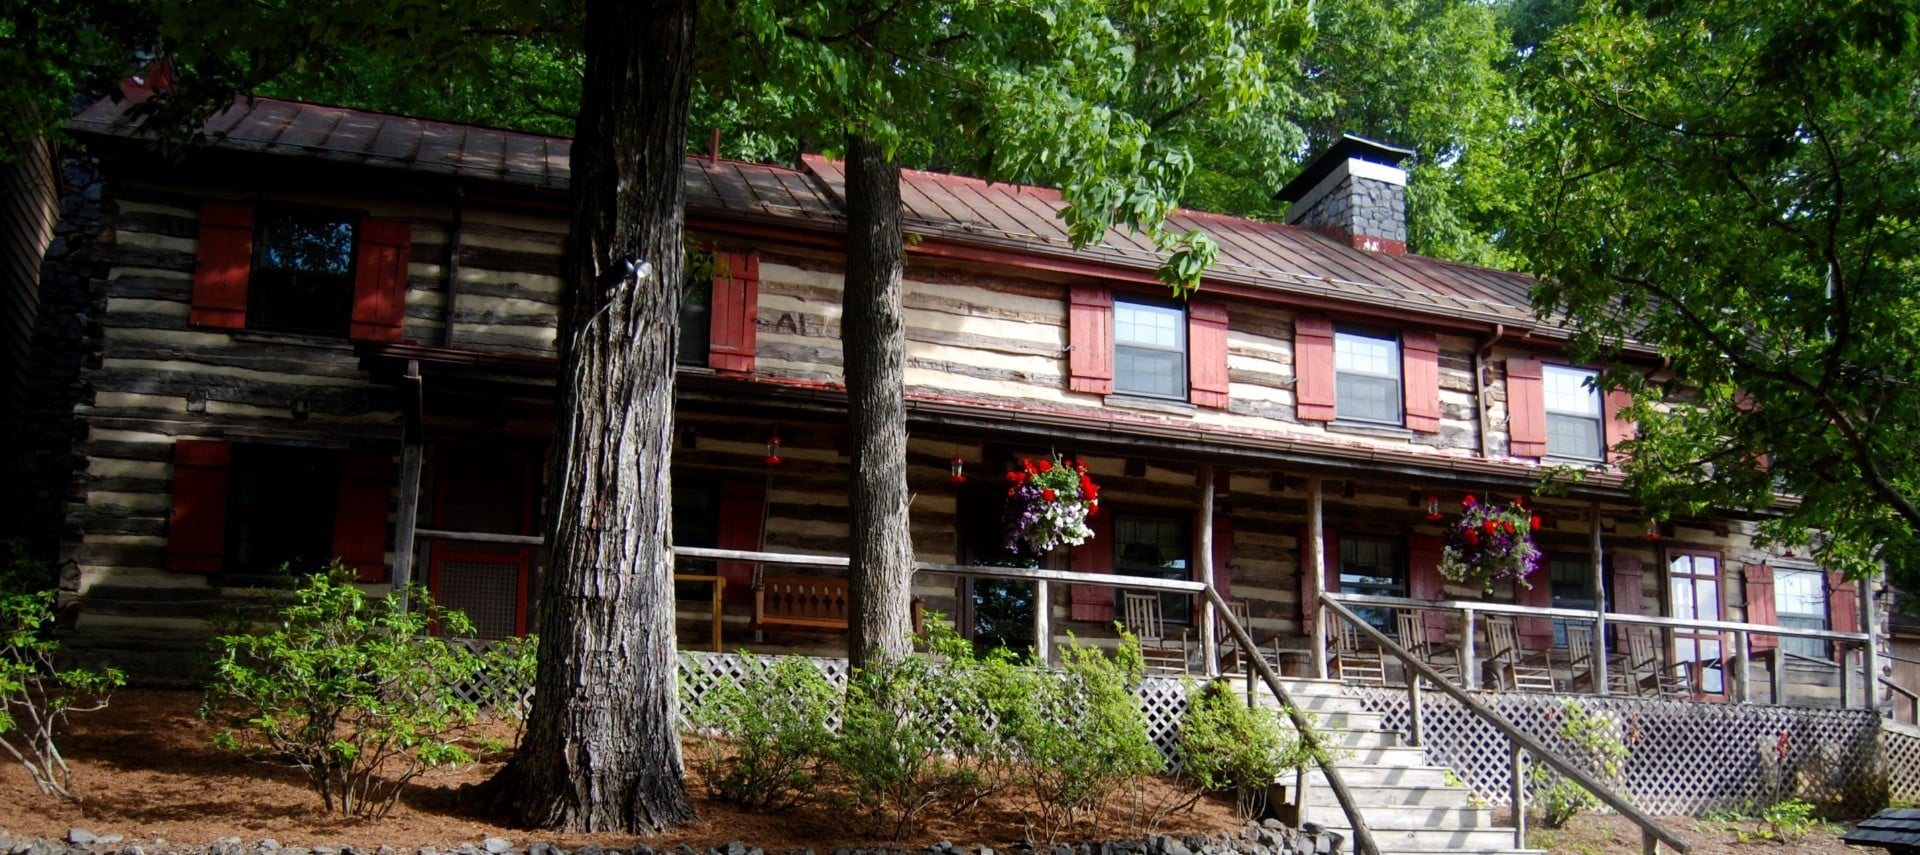 Front view of the outside of a large log cabin with red shutters and a large front porch.